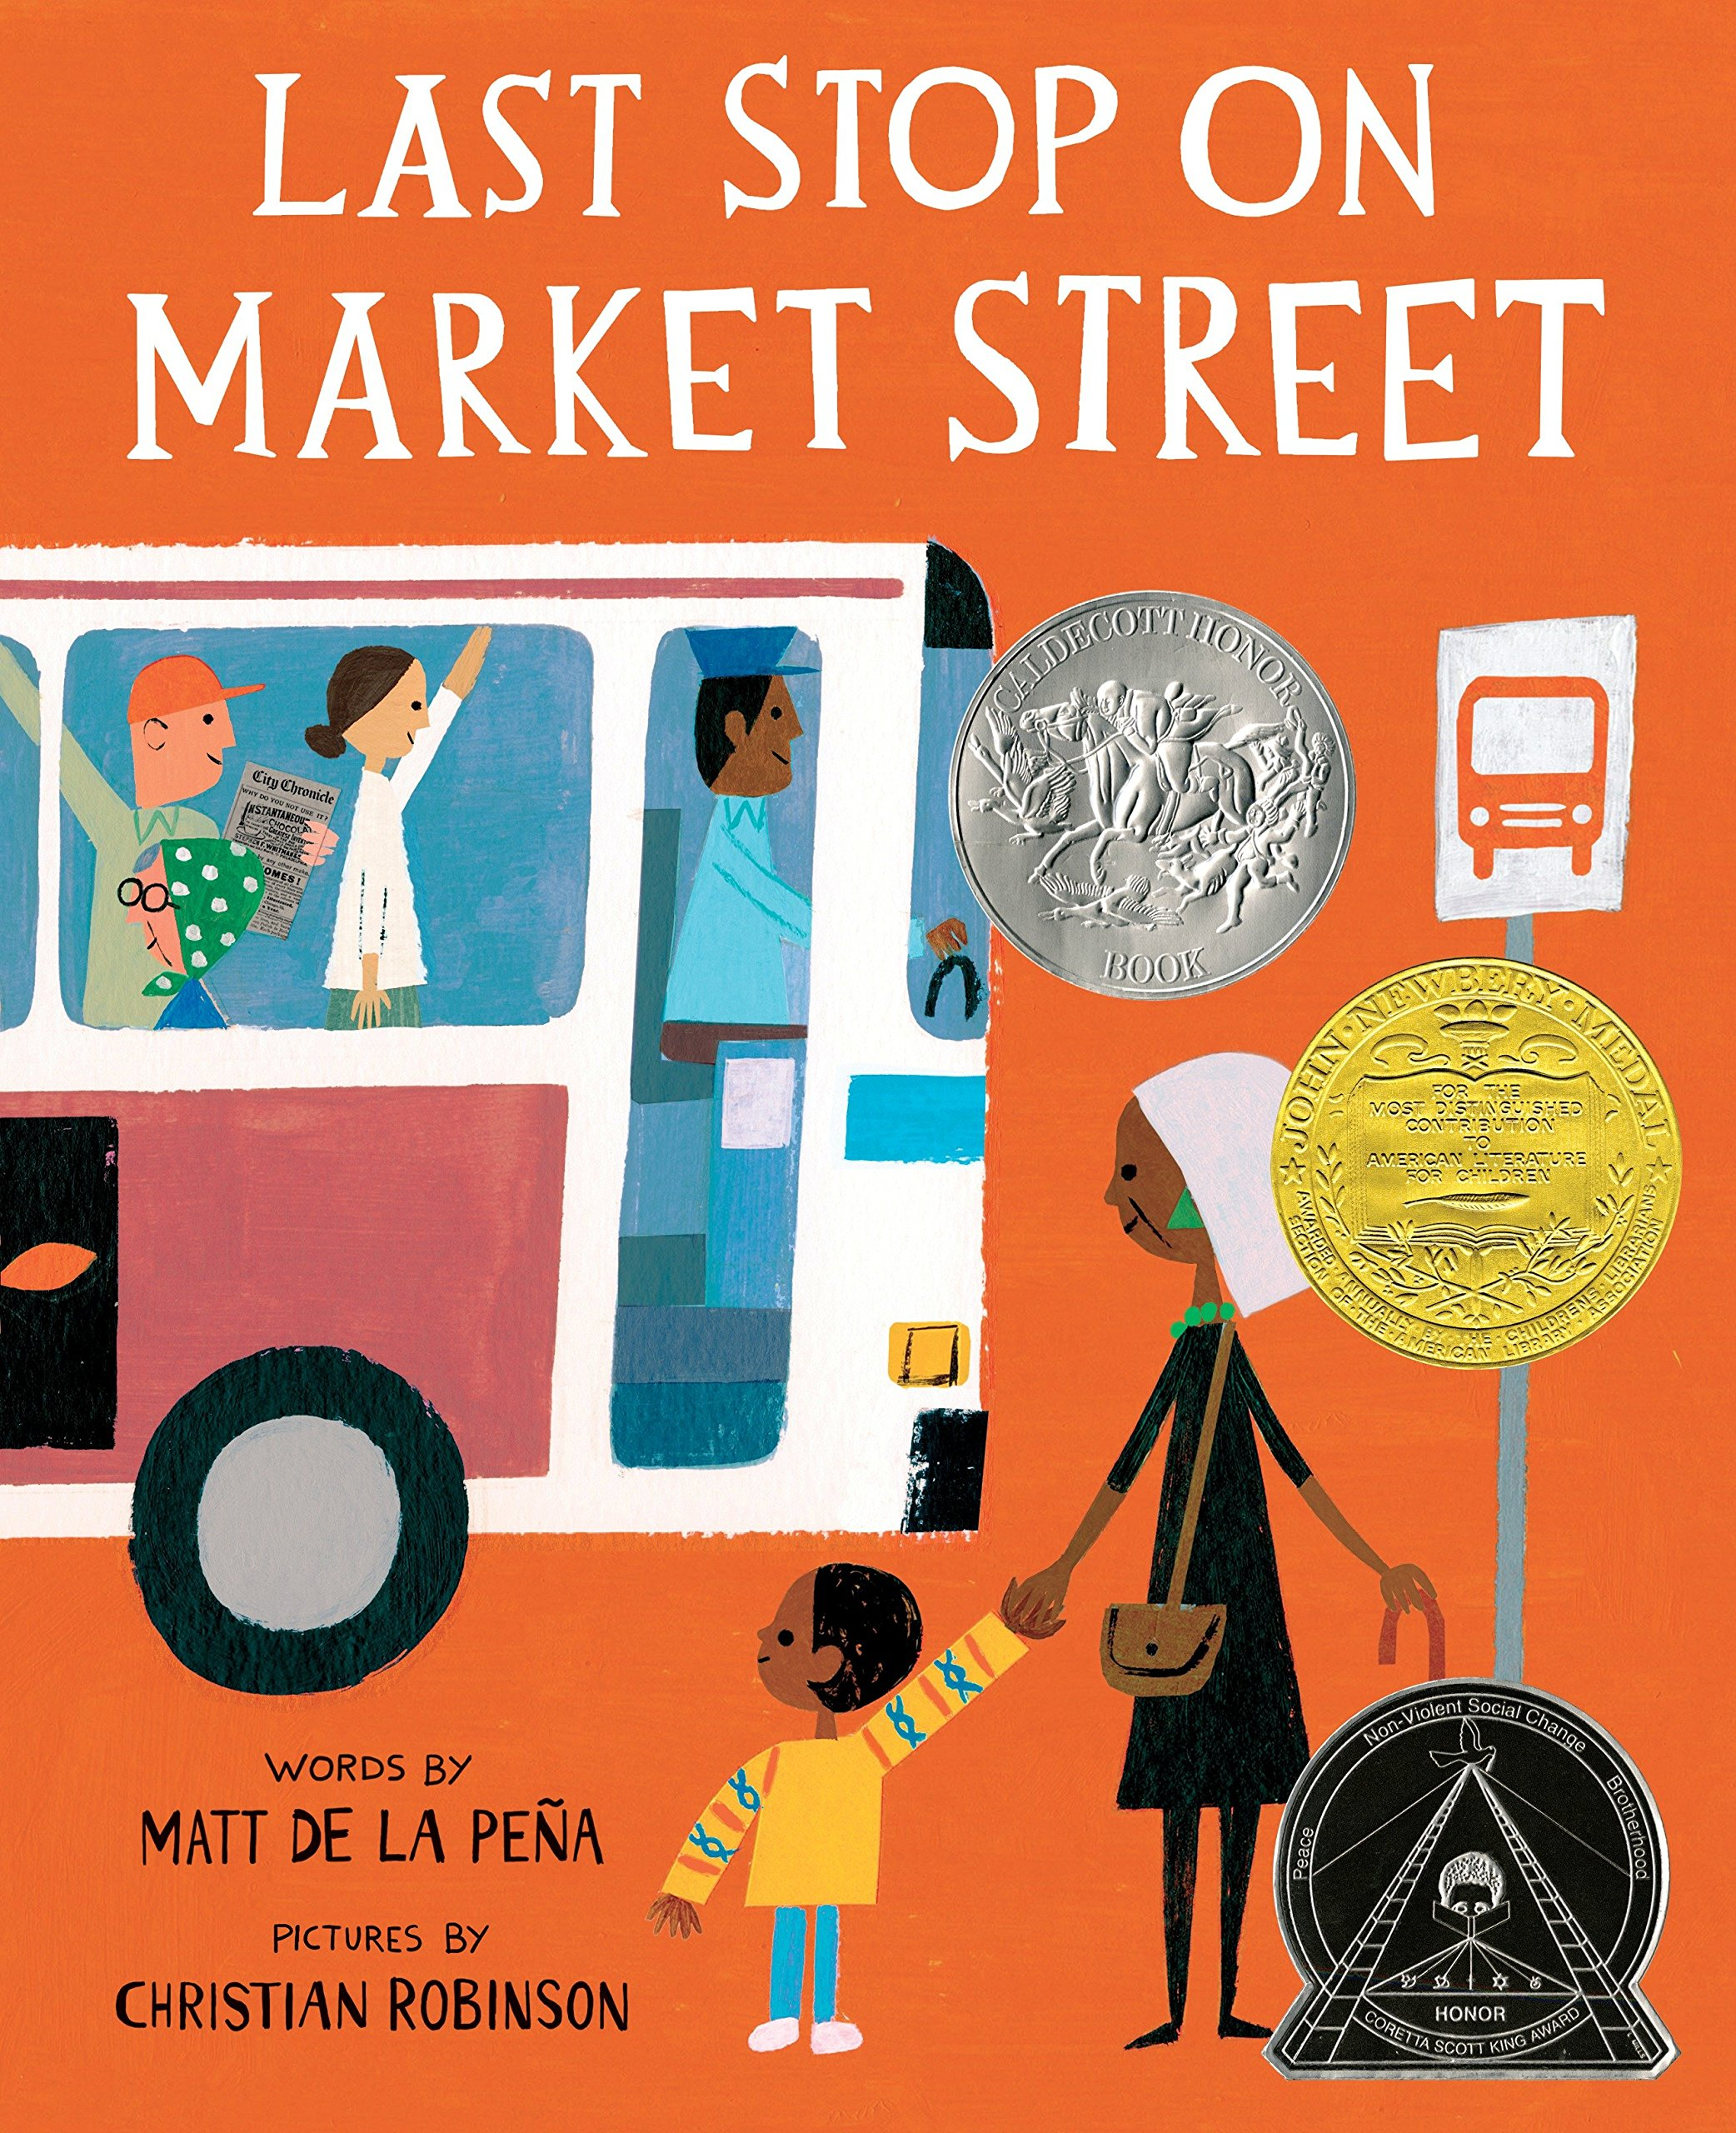 Picture Books that teach empathy to kids  - last stop on market street.jpg